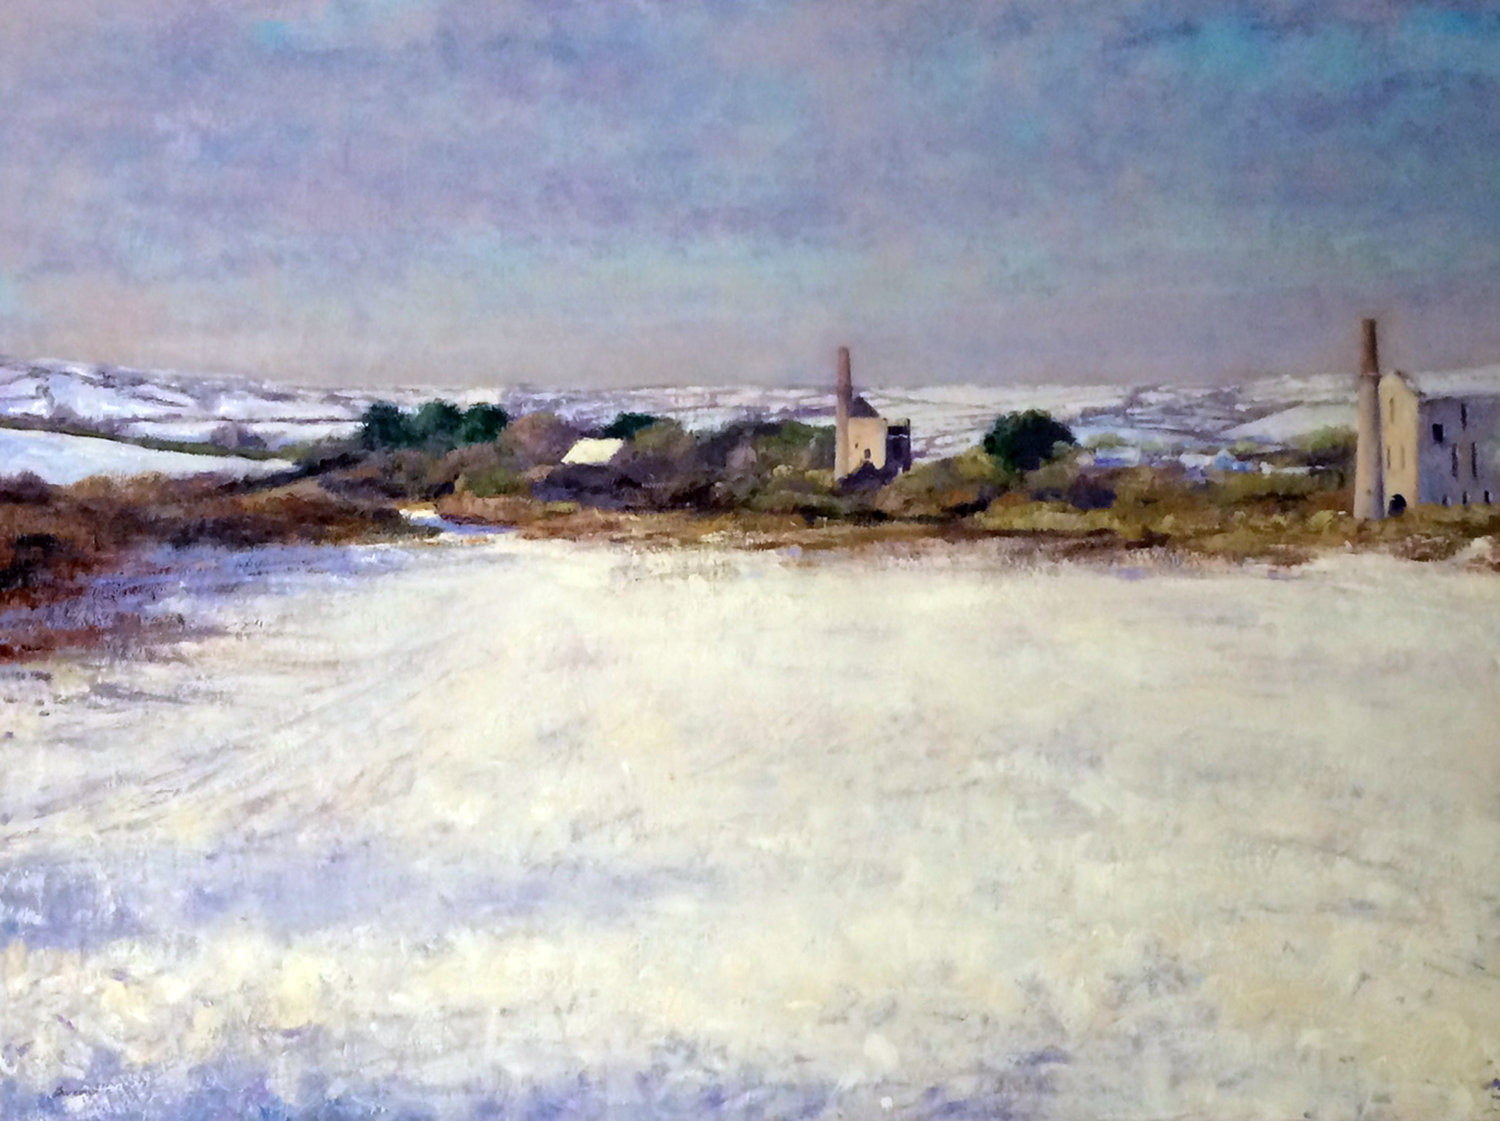 'Morning snow, Cornwall', Andrew Barrowman, Oil on canvas, 78 x 102 x 3 cm